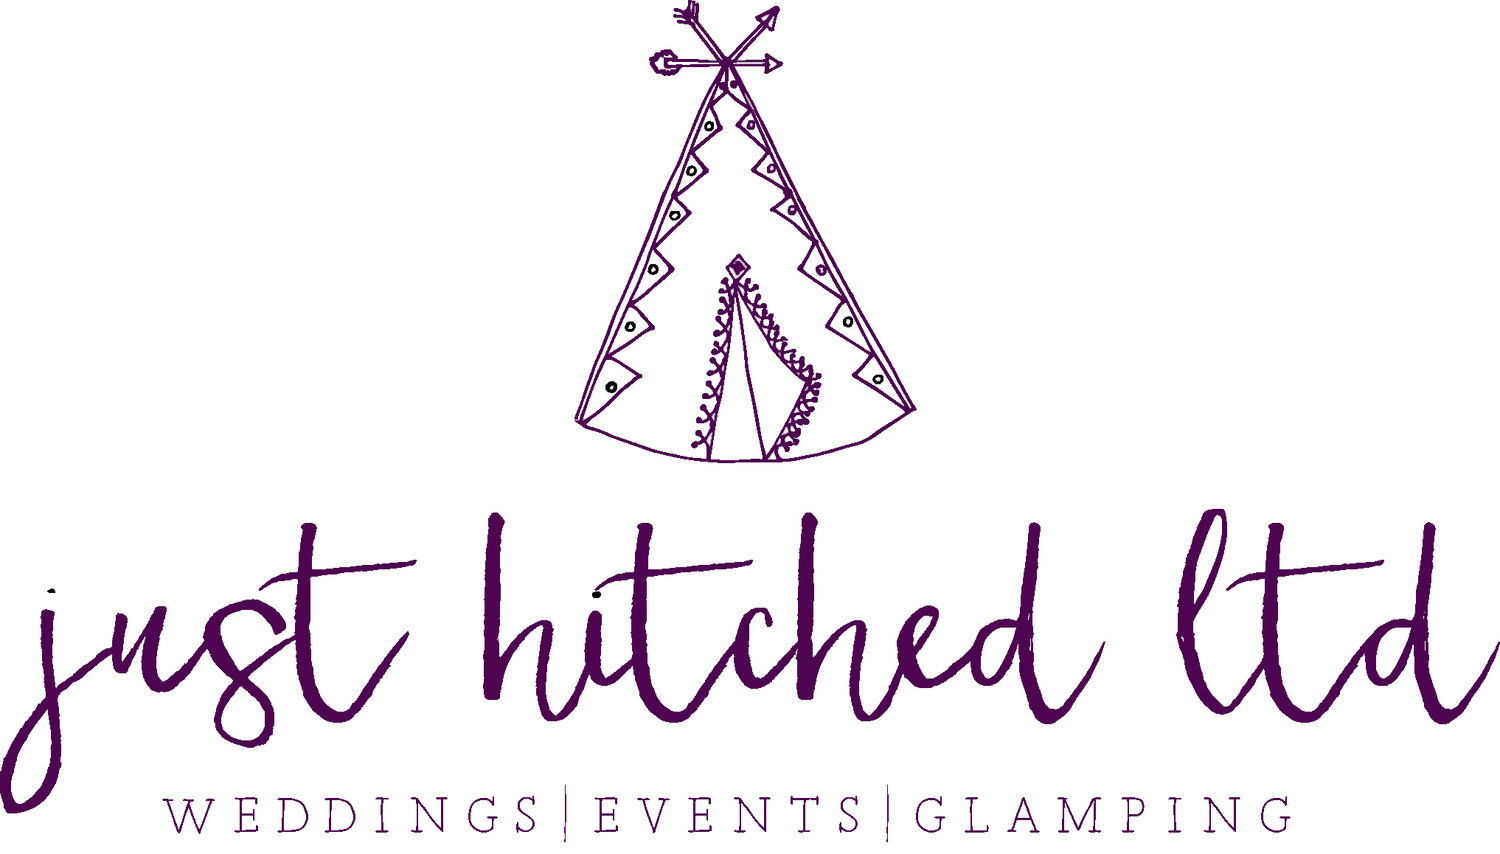 Just Hitched Ltd